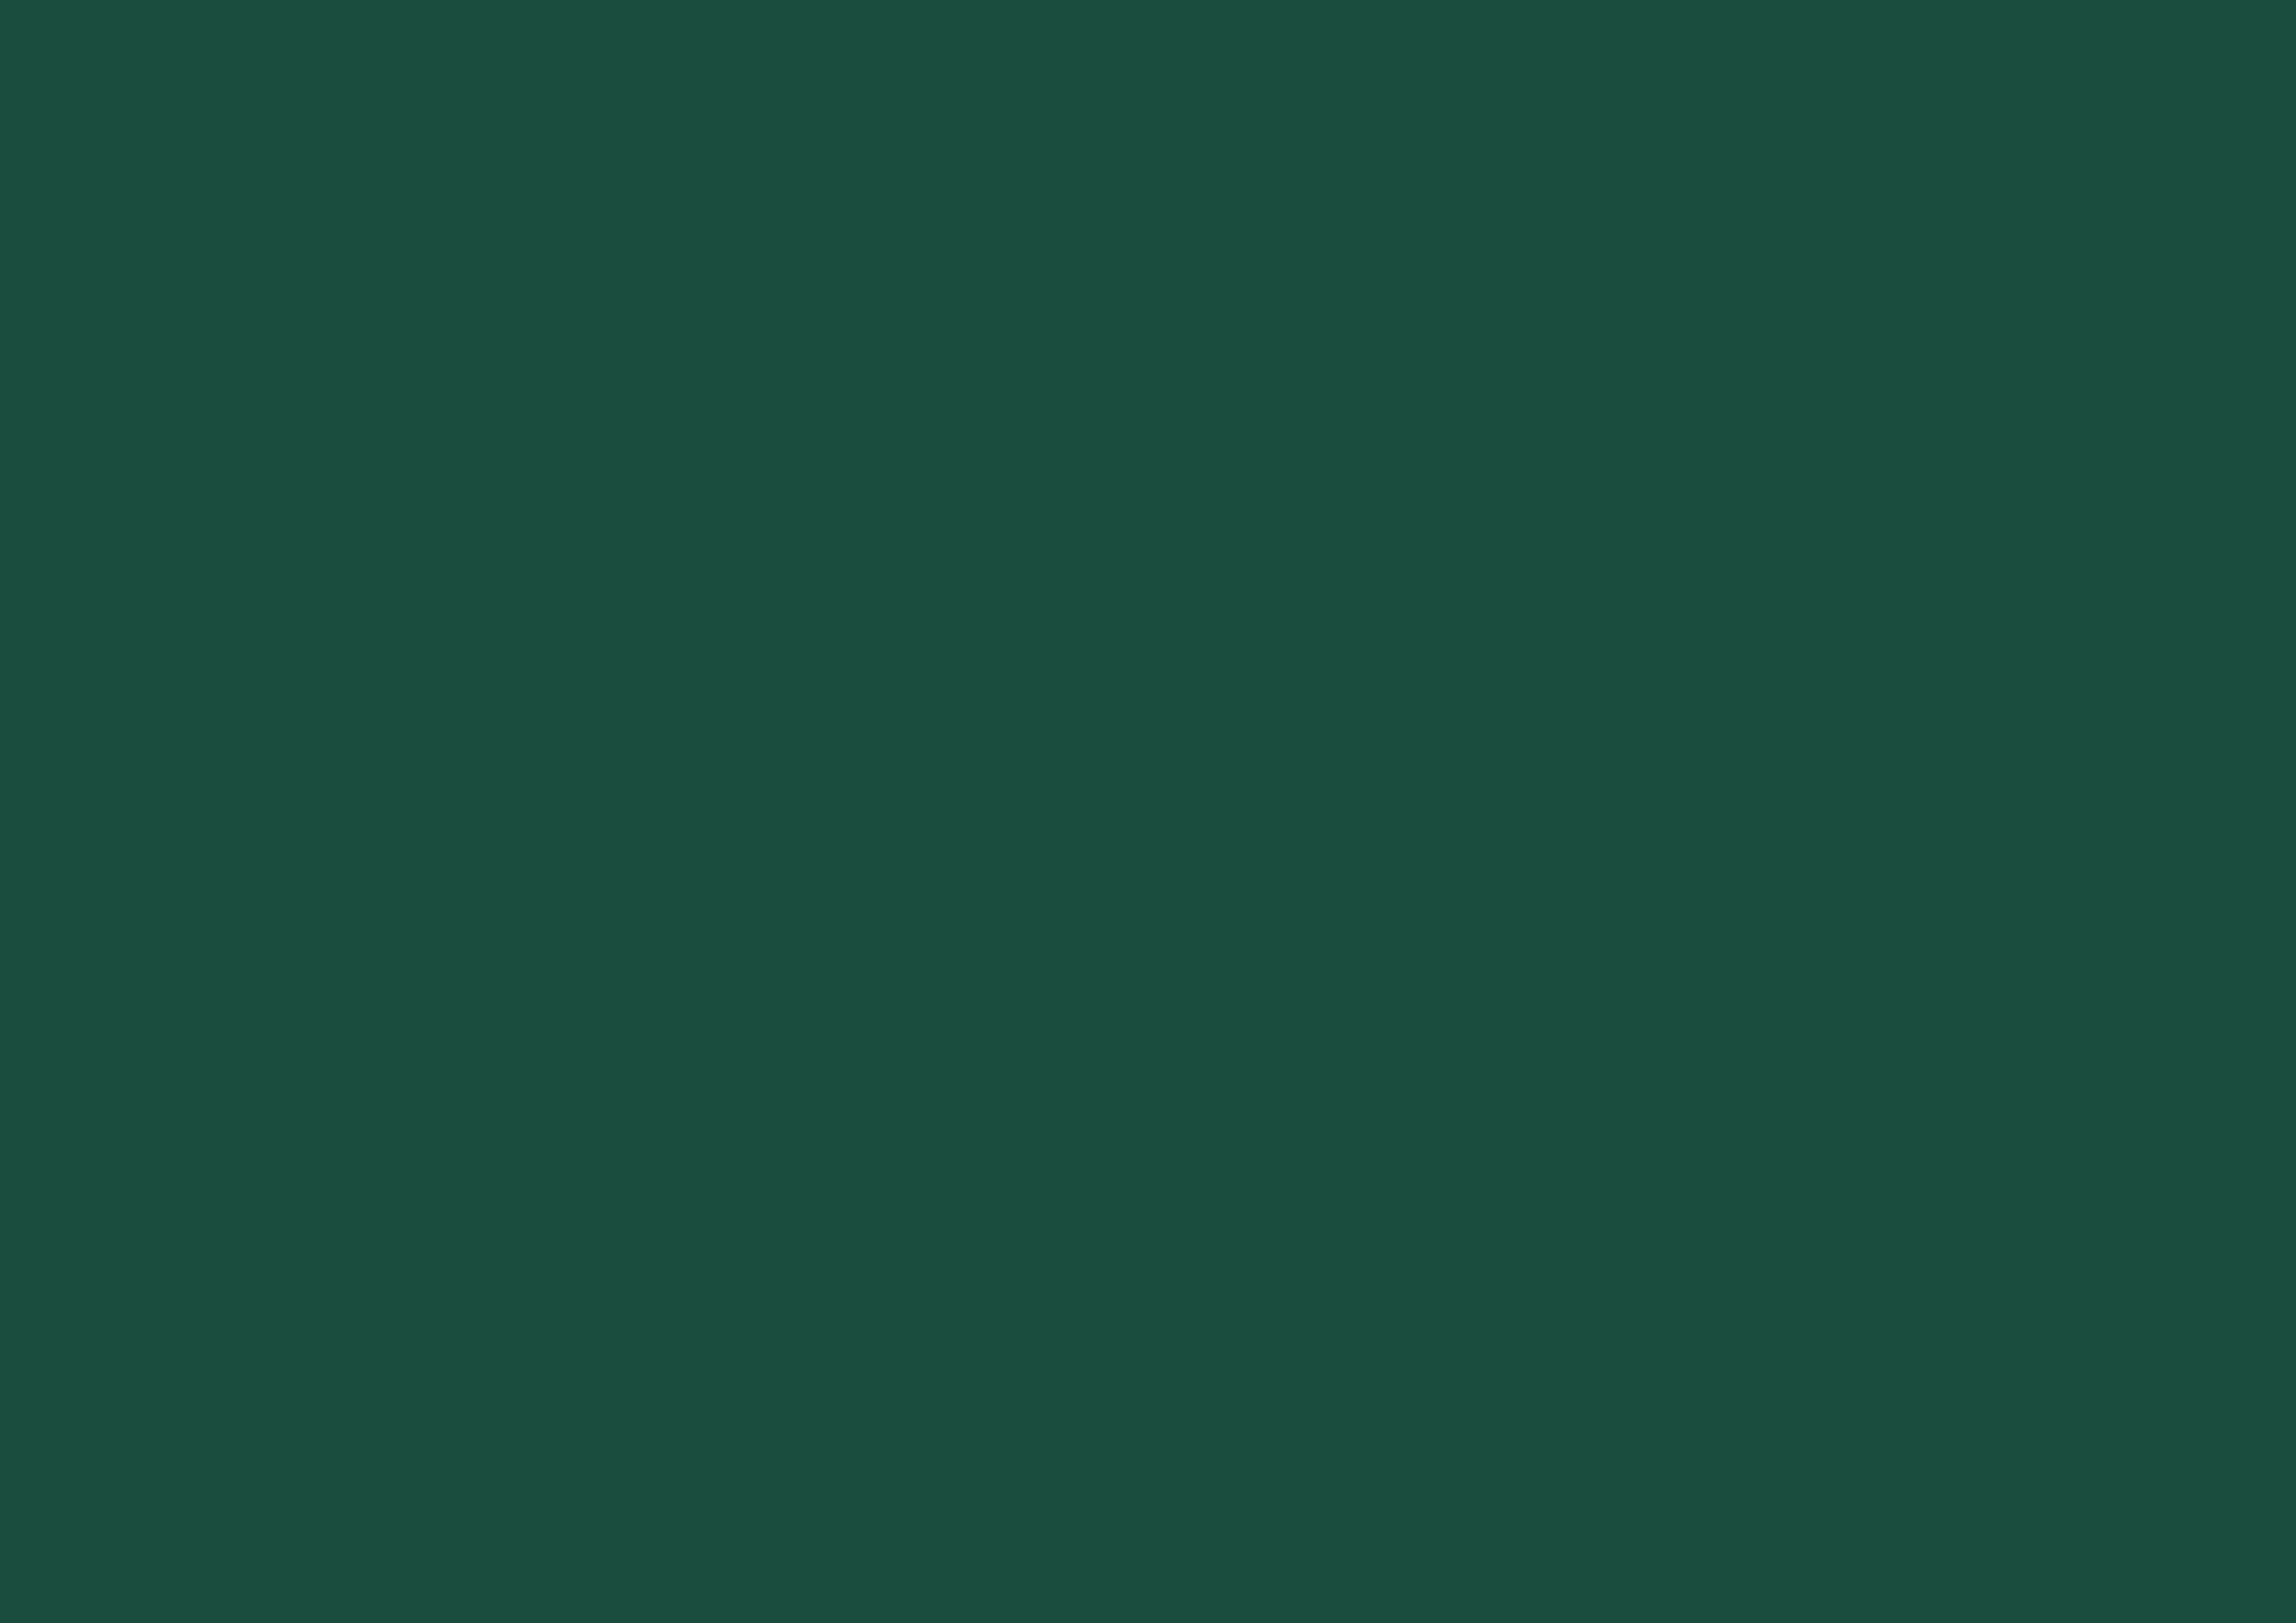 3508x2480 English Green Solid Color Background